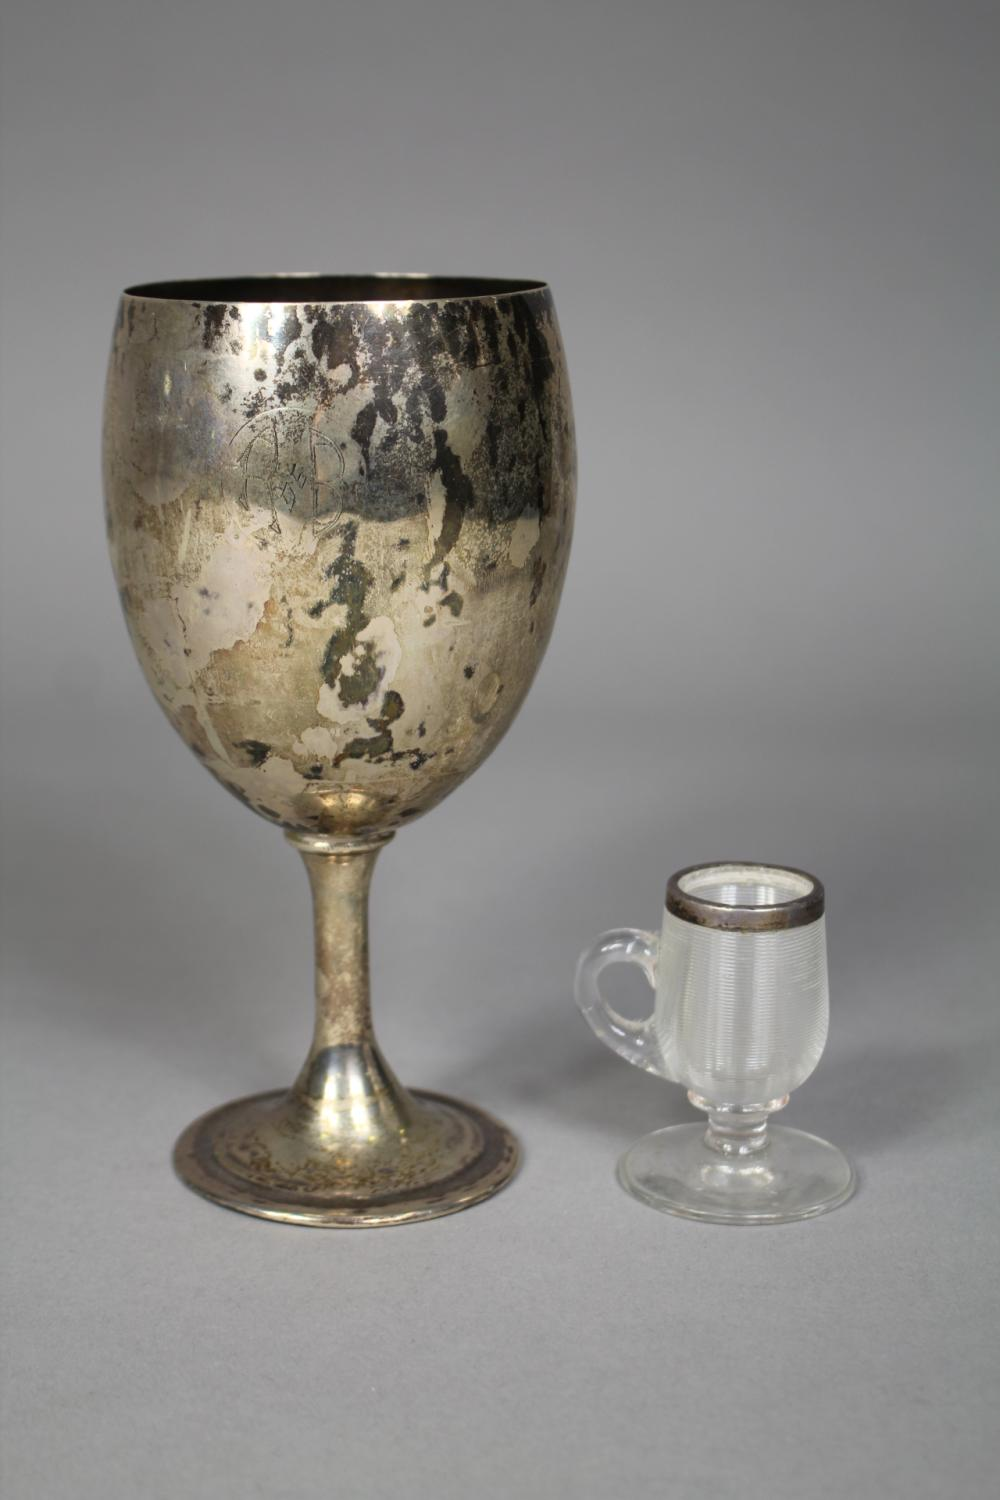 Antique silver goblet market TN 0900 together with a miniature cup with hallmarked sterling silver rim, approx 16cm H and shorter (2)